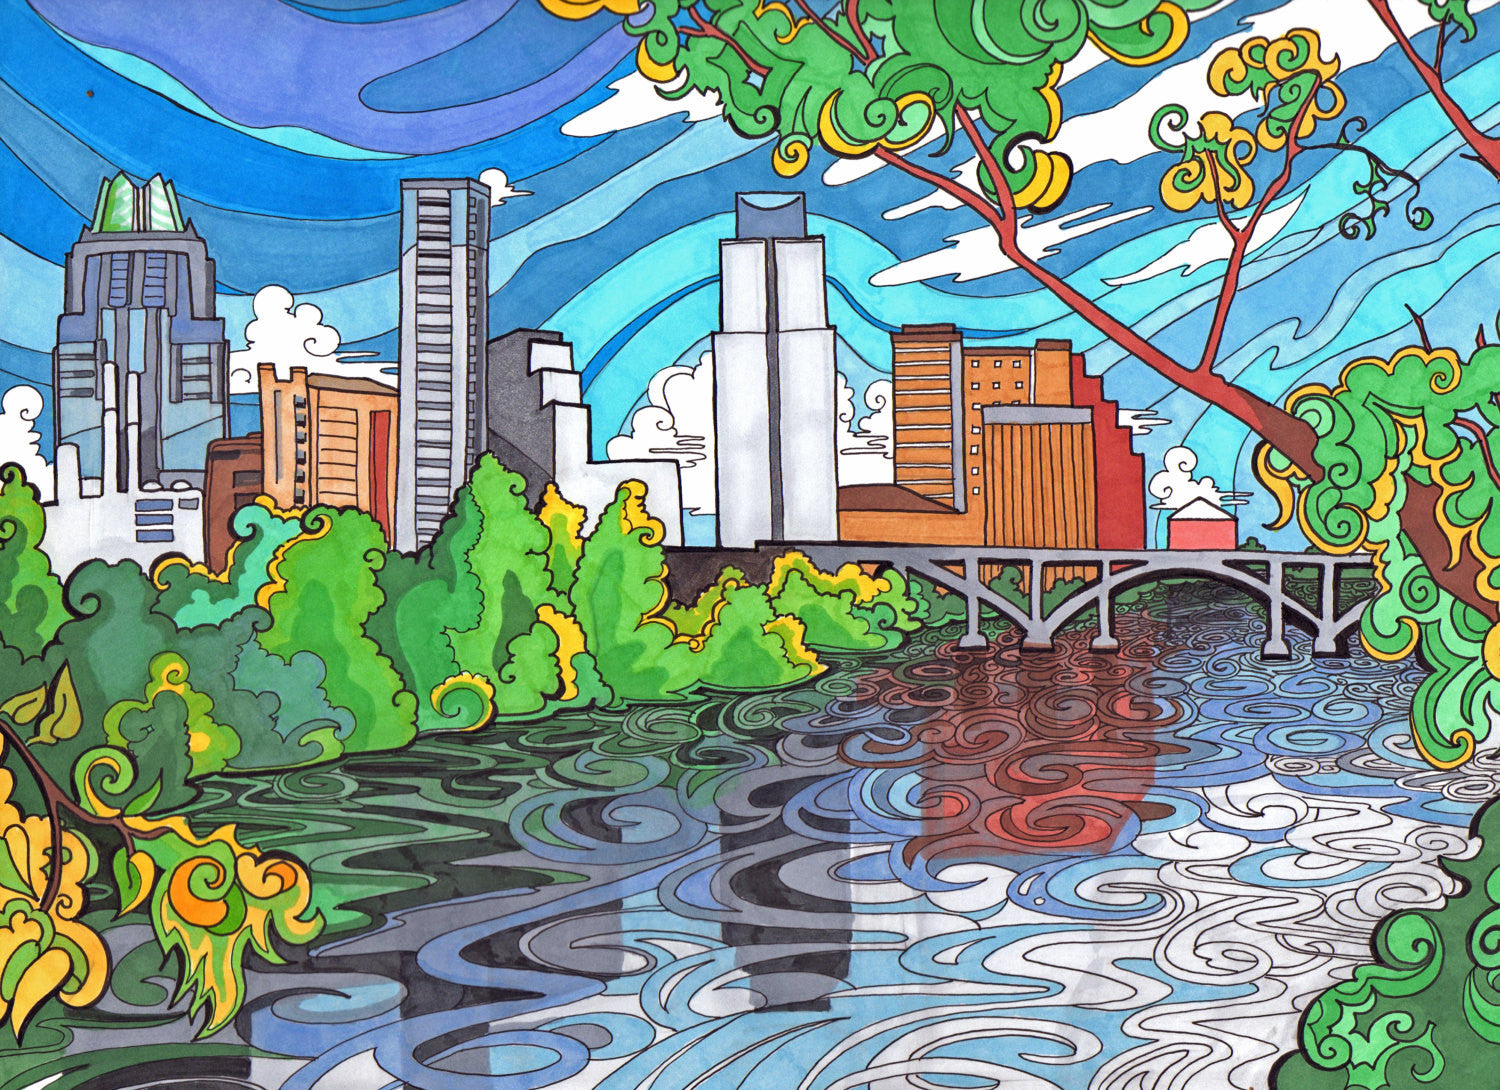 Downtown Austin Print - Borrelli Illustrations